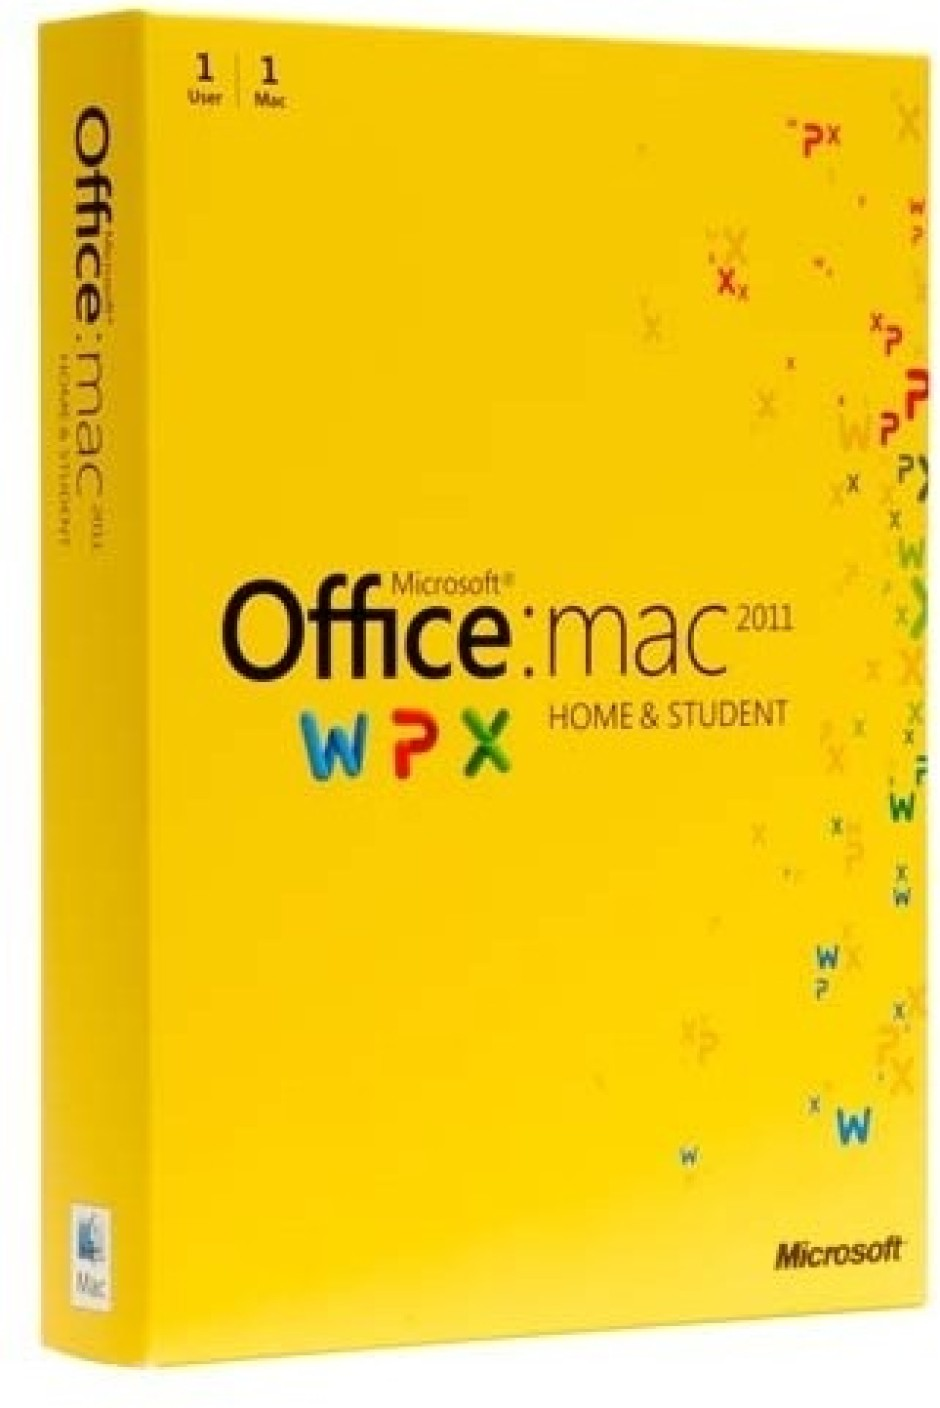 ms office 2011 for windows 7 free download with key